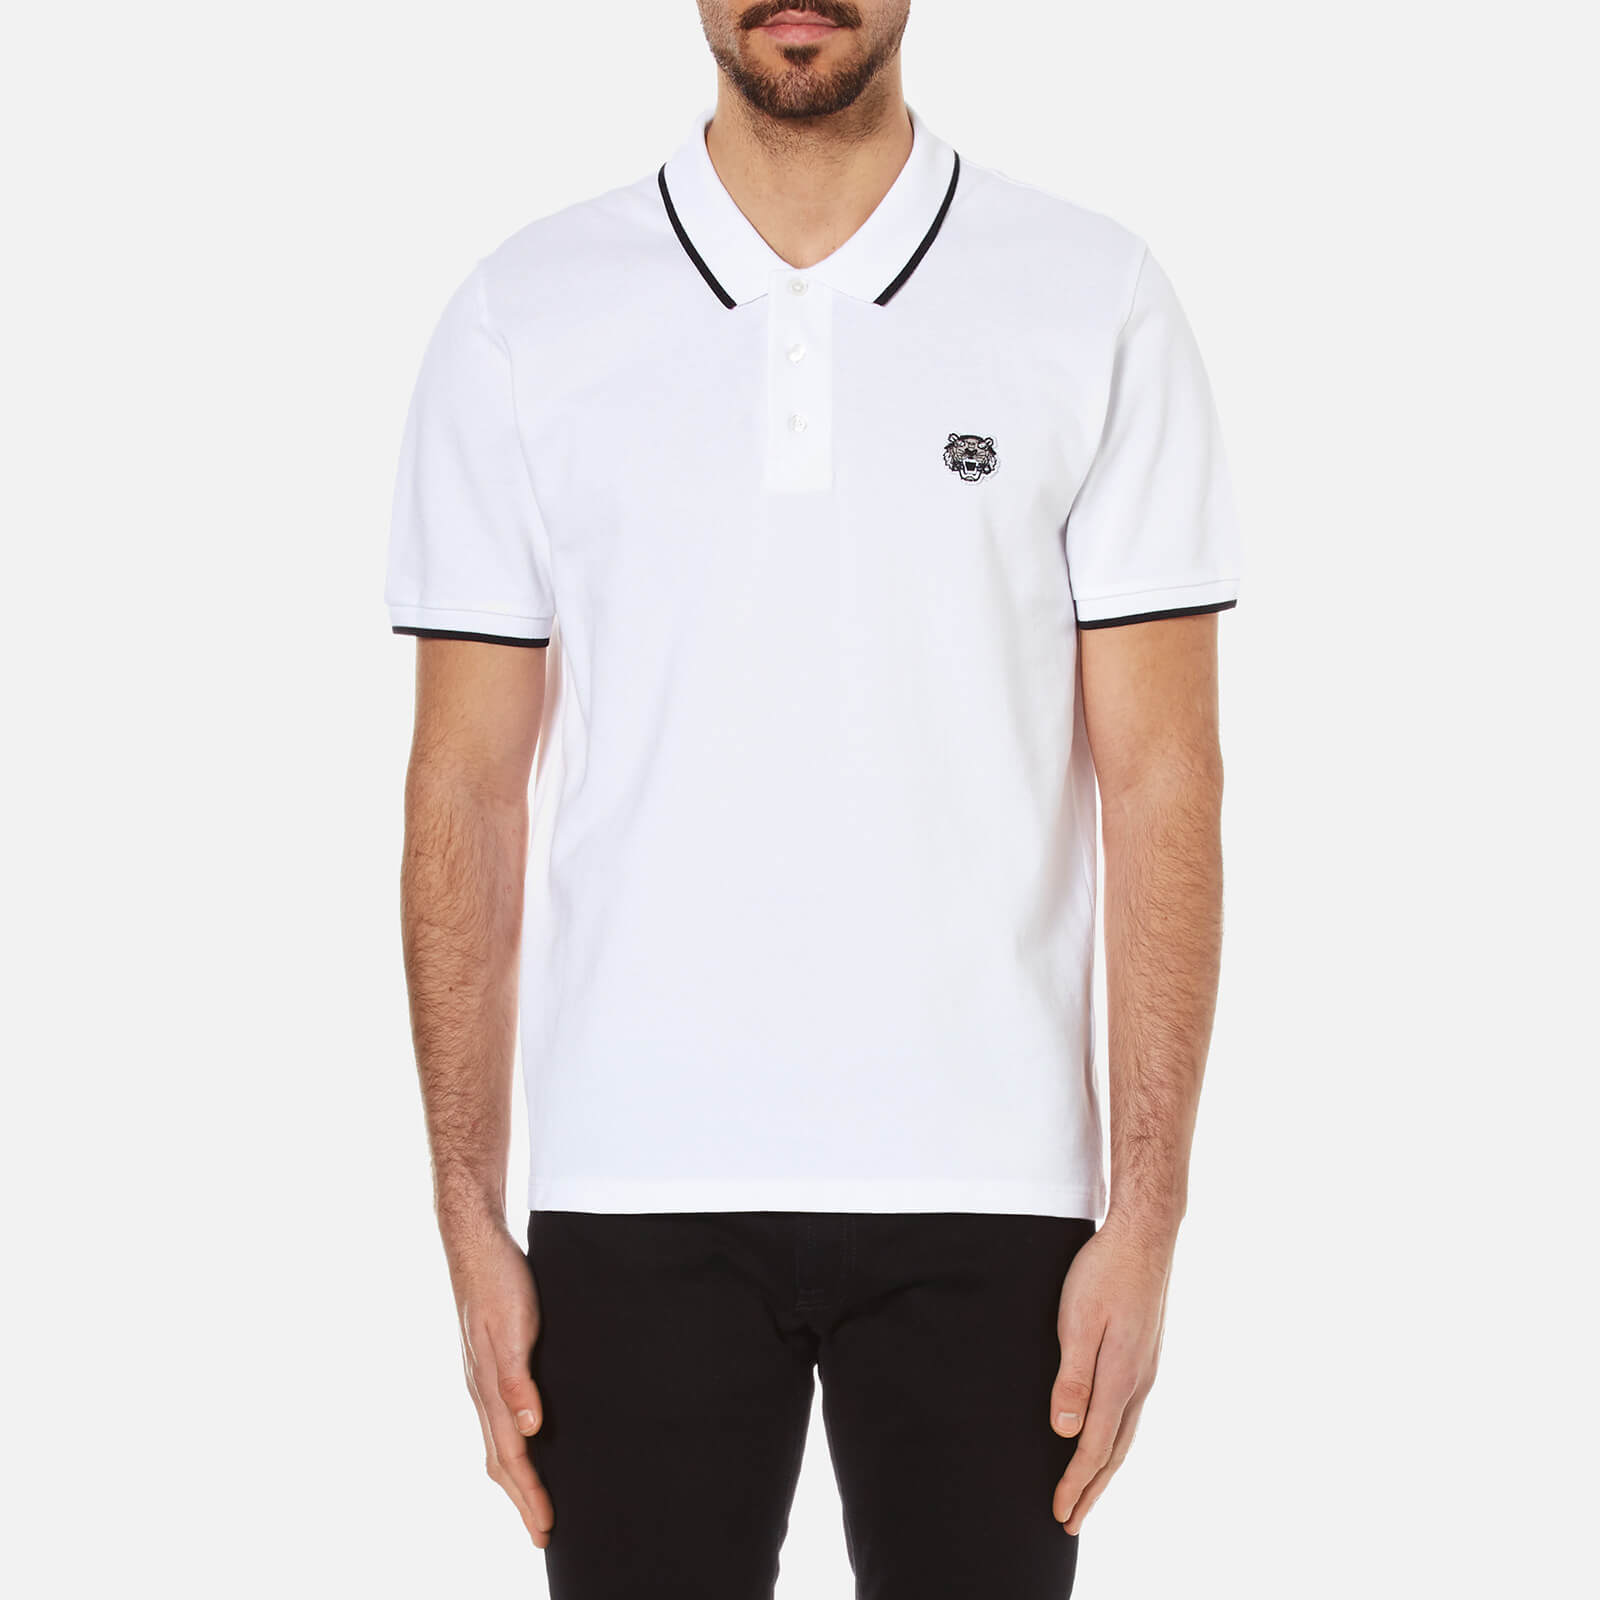 3c9811df692f KENZO Men's Pique Tiger Polo Shirt - White - Free UK Delivery over £50